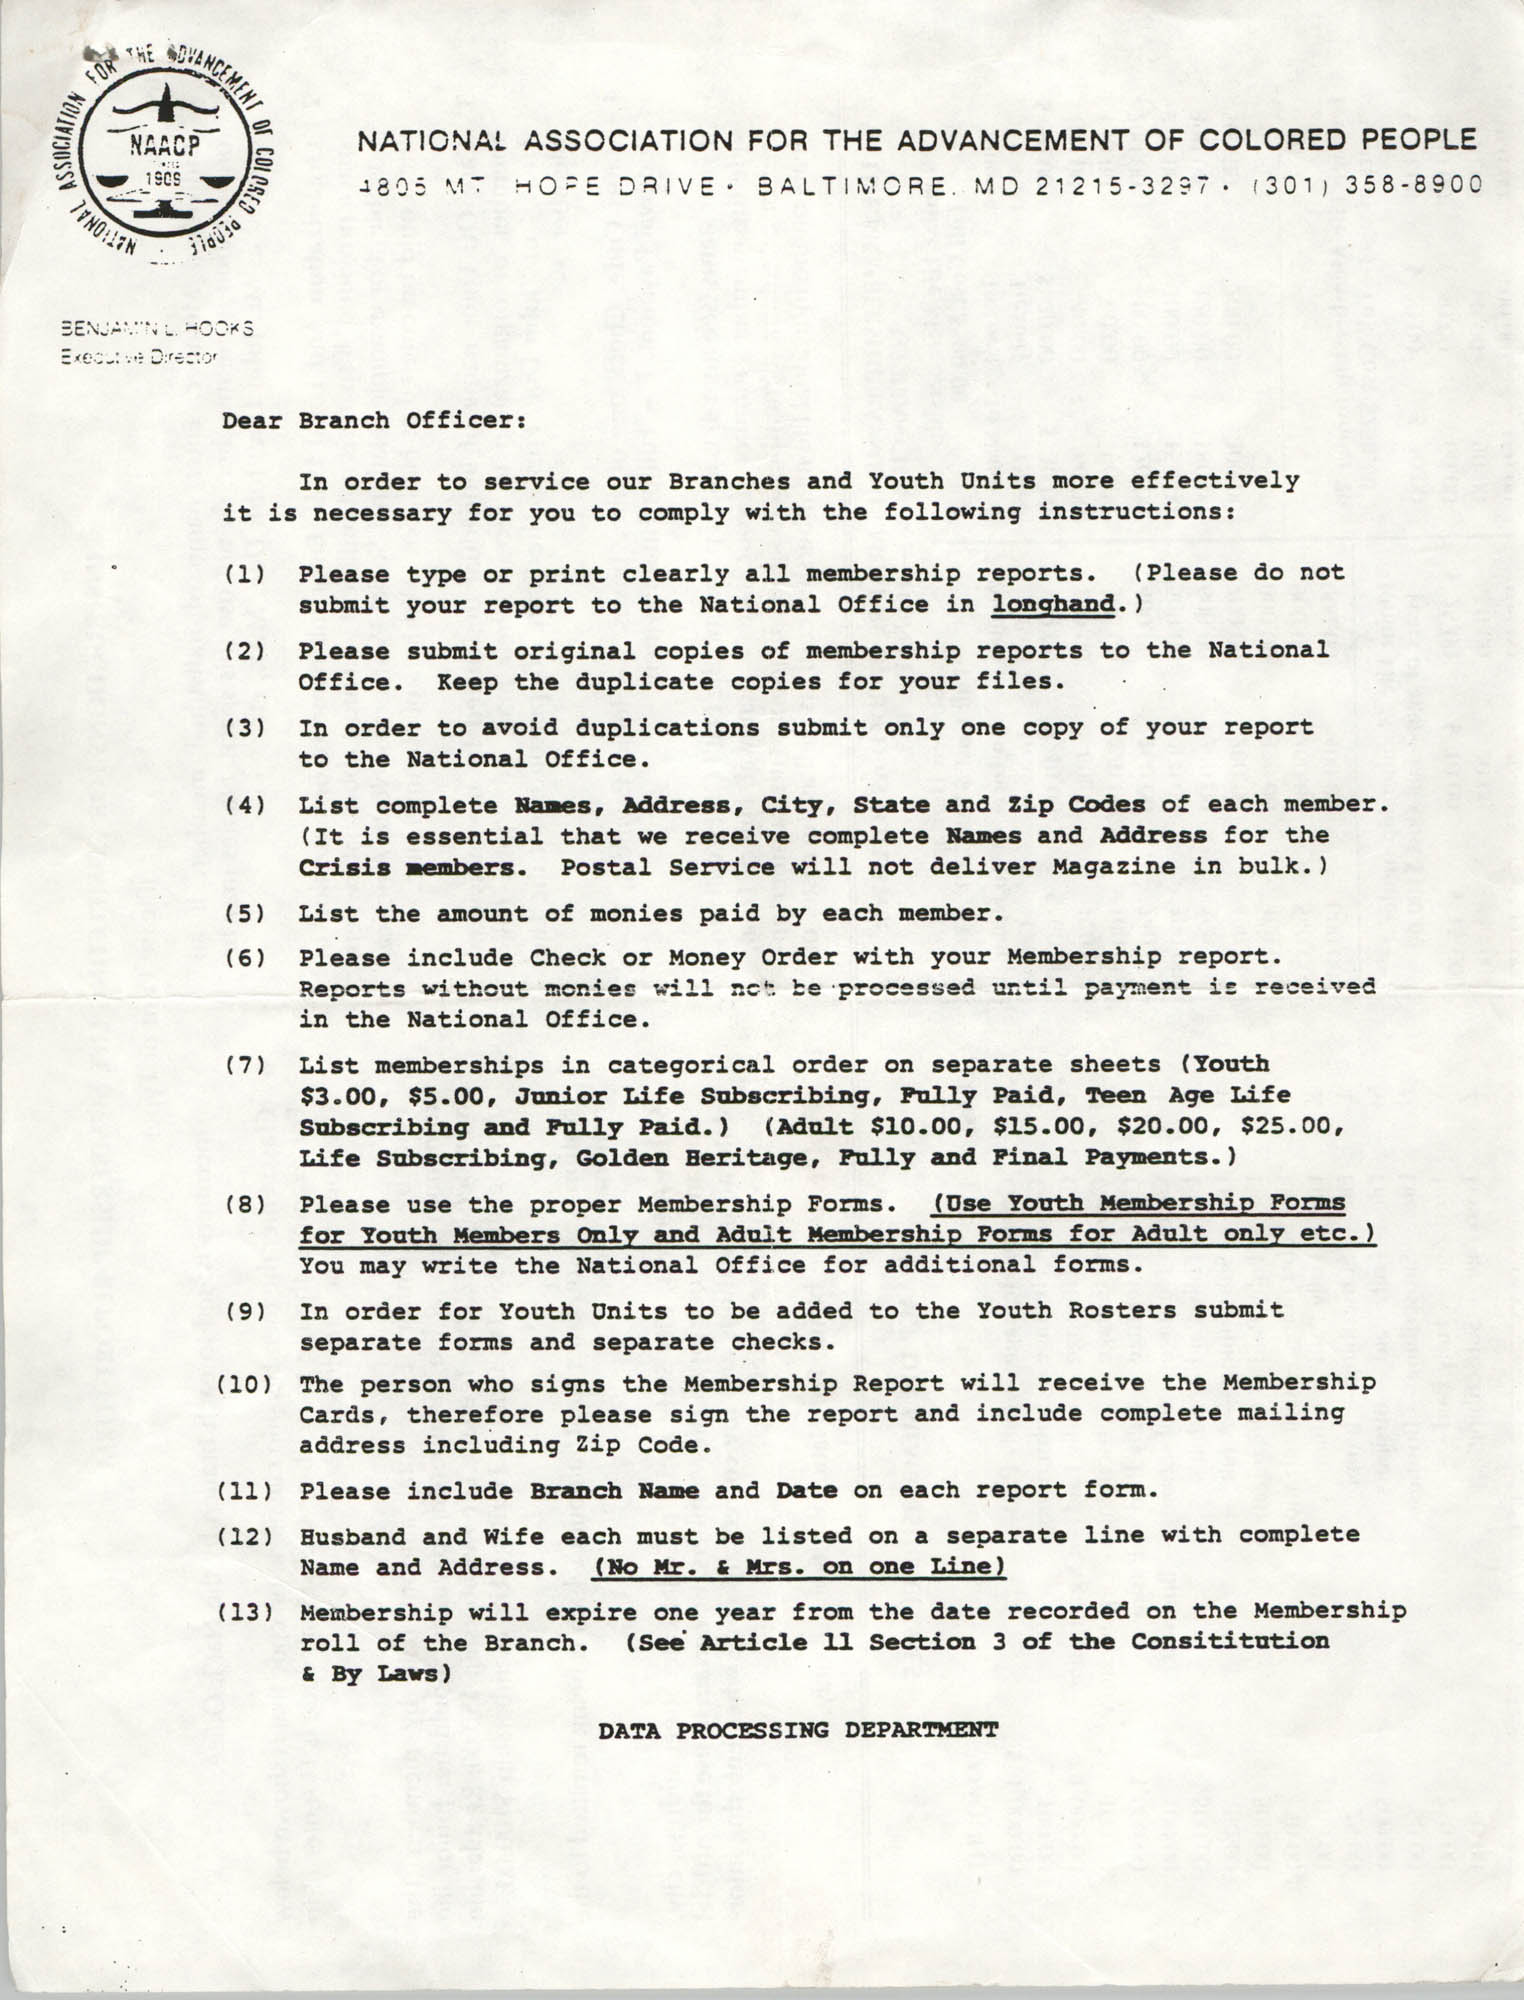 Branch Officer Instructions, NAACP